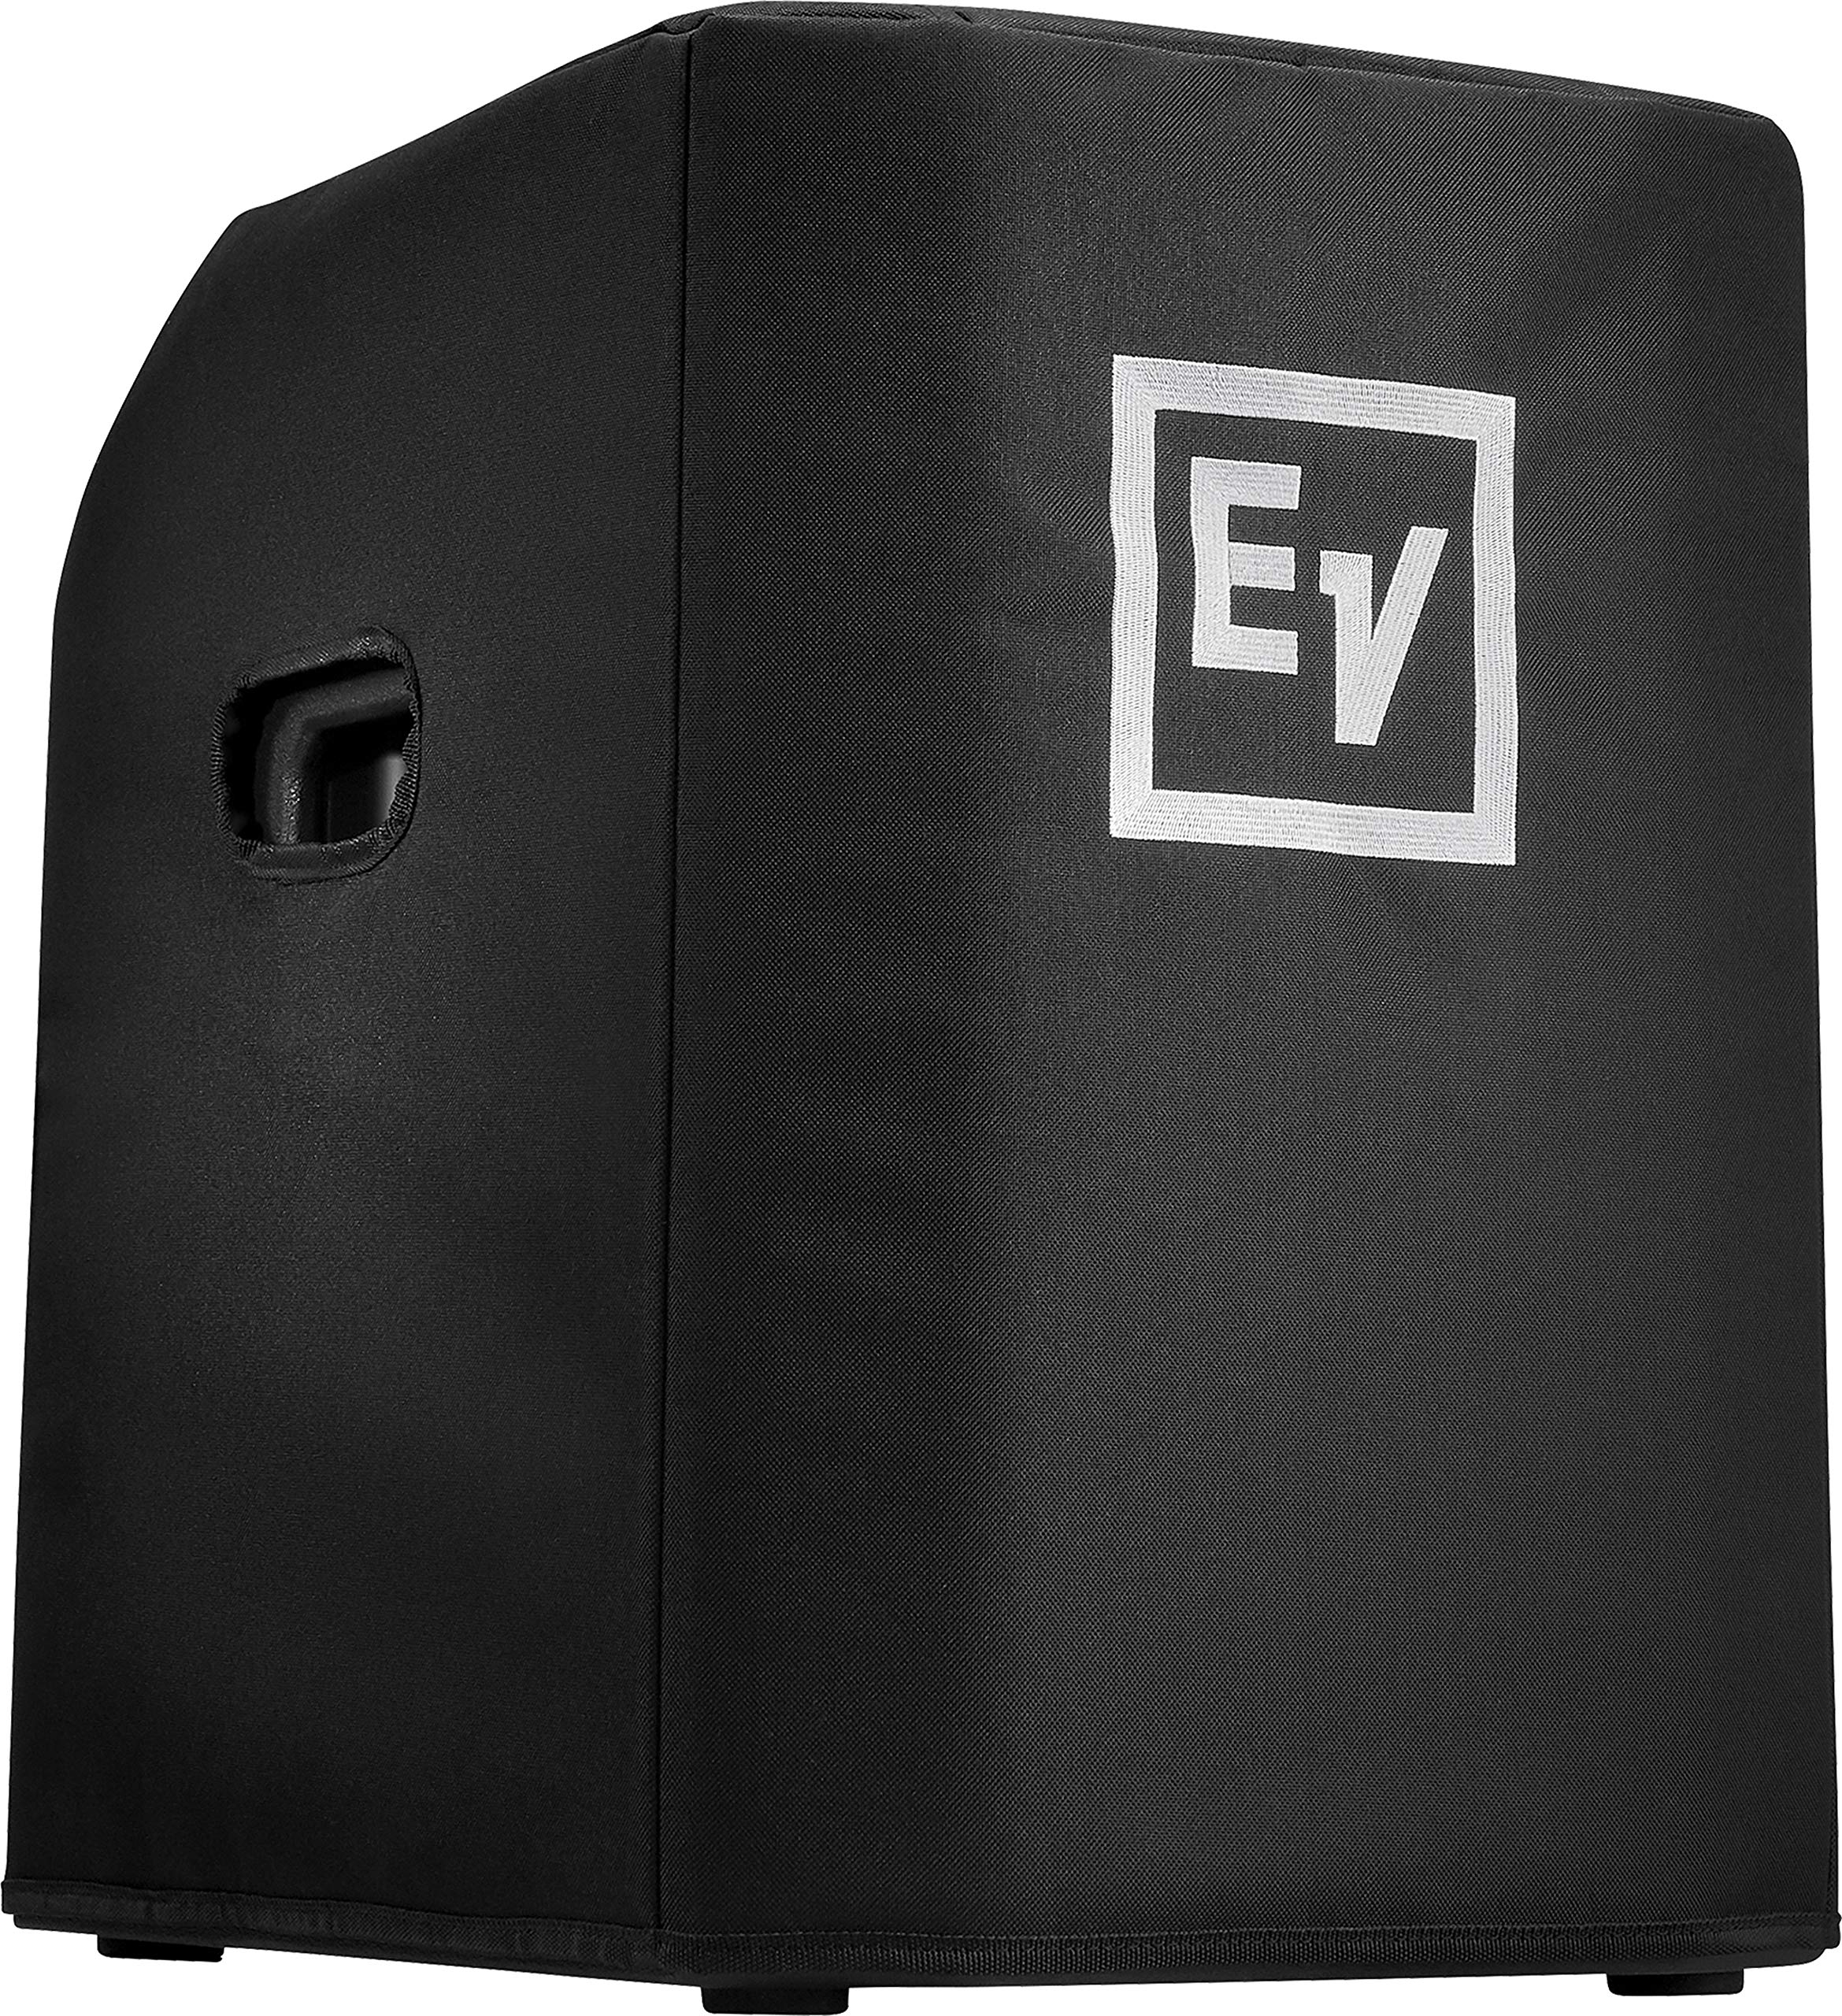 Electro-Voice Deluxe Padded Speaker Cover for Evolve 50 Subwoofers by Electro-Voice